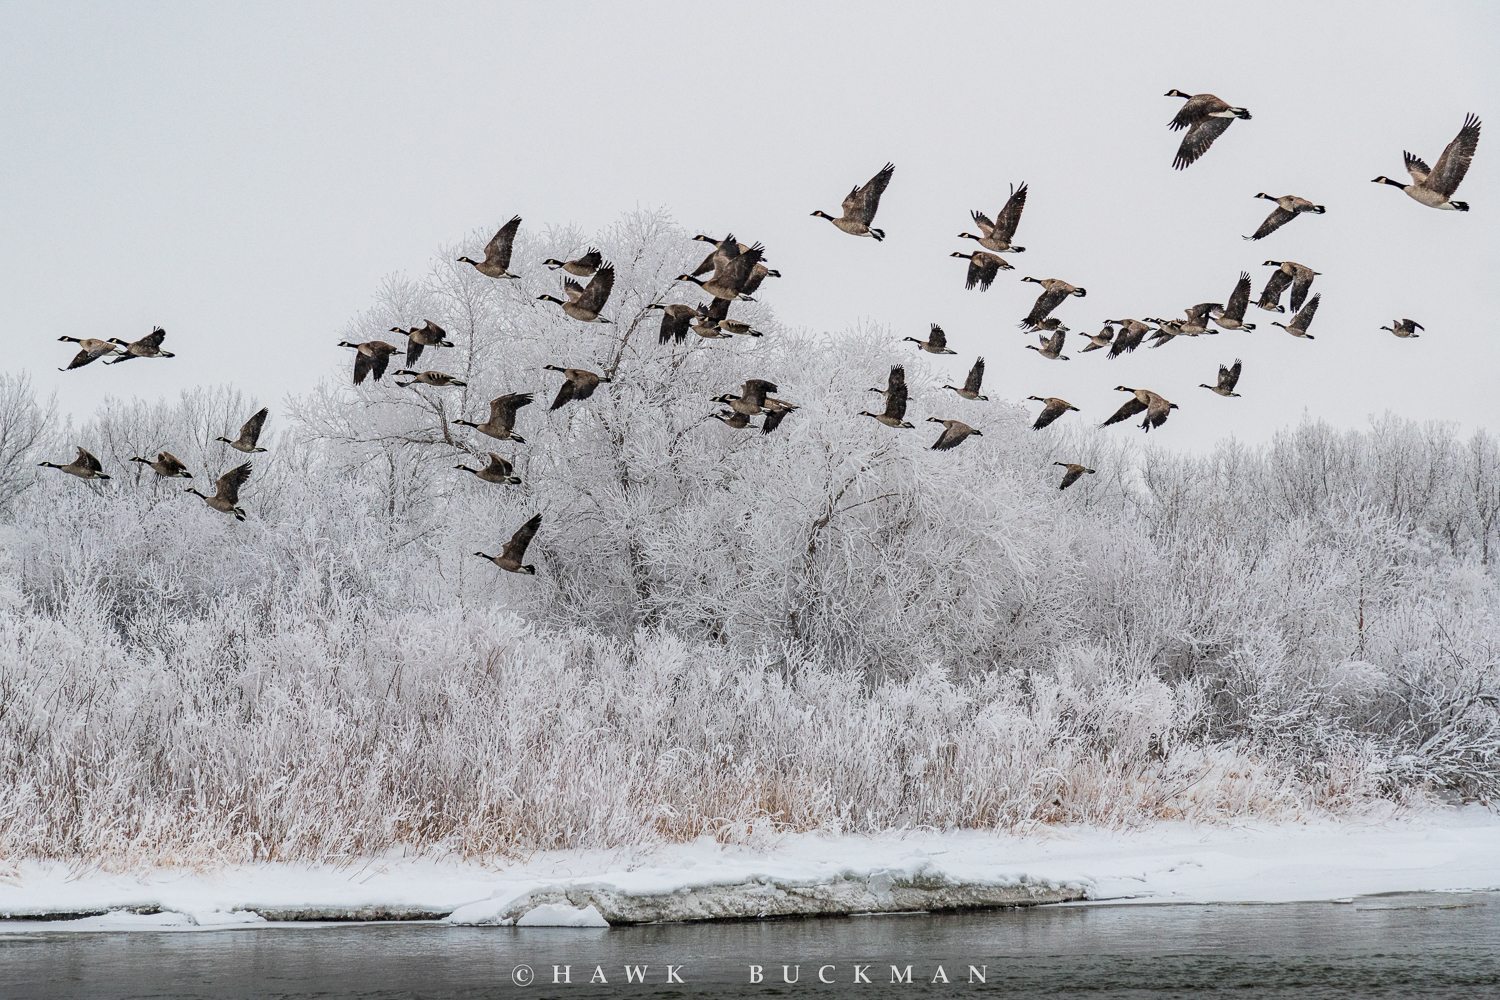 Canadian geese lifting off the North Platte Rive as hoar-frost, ice and snow blanket the landscape during one of the coldest winters in Nebraska.